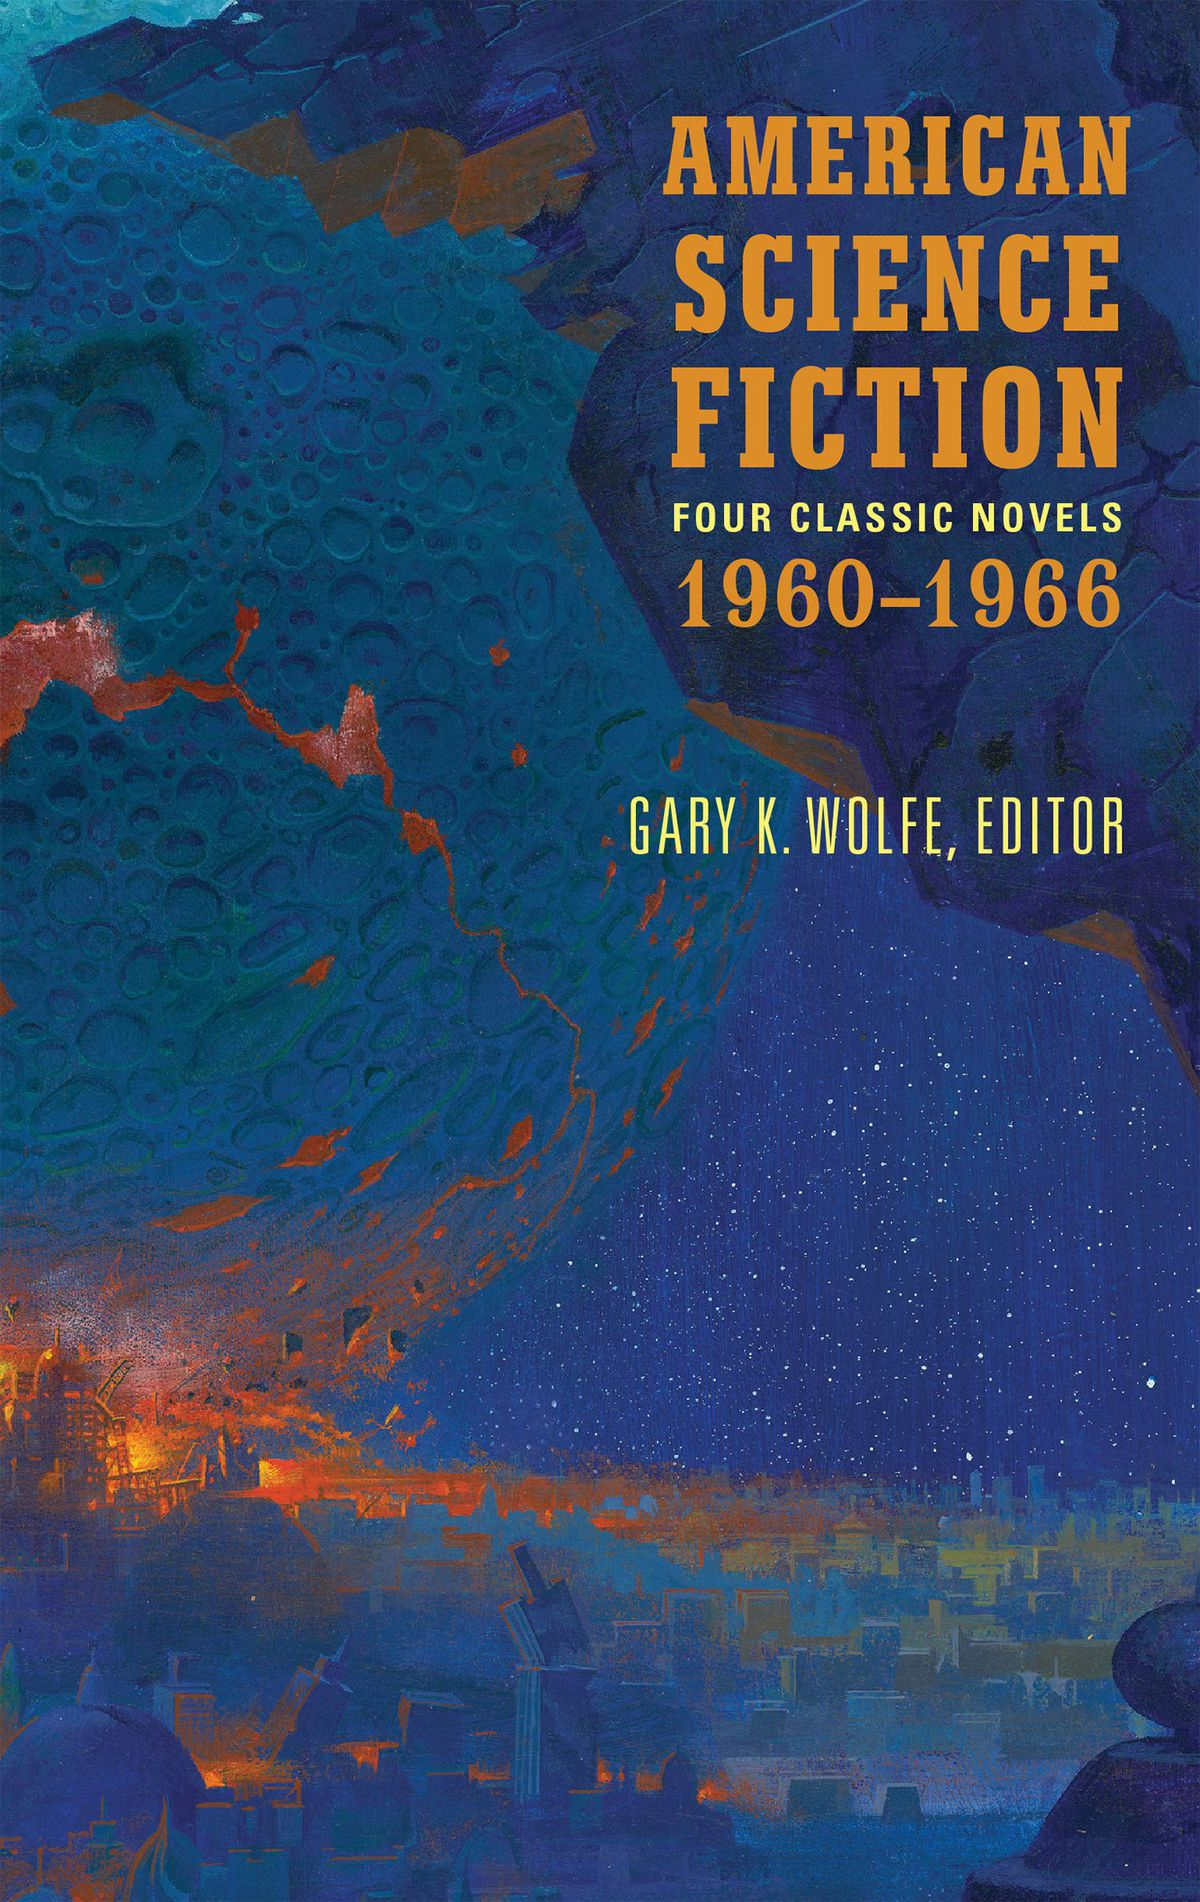 """Cover of """"American Science Fiction: Four Classic Novels, 1960-1966"""" edited by Gary K. Wolfe"""